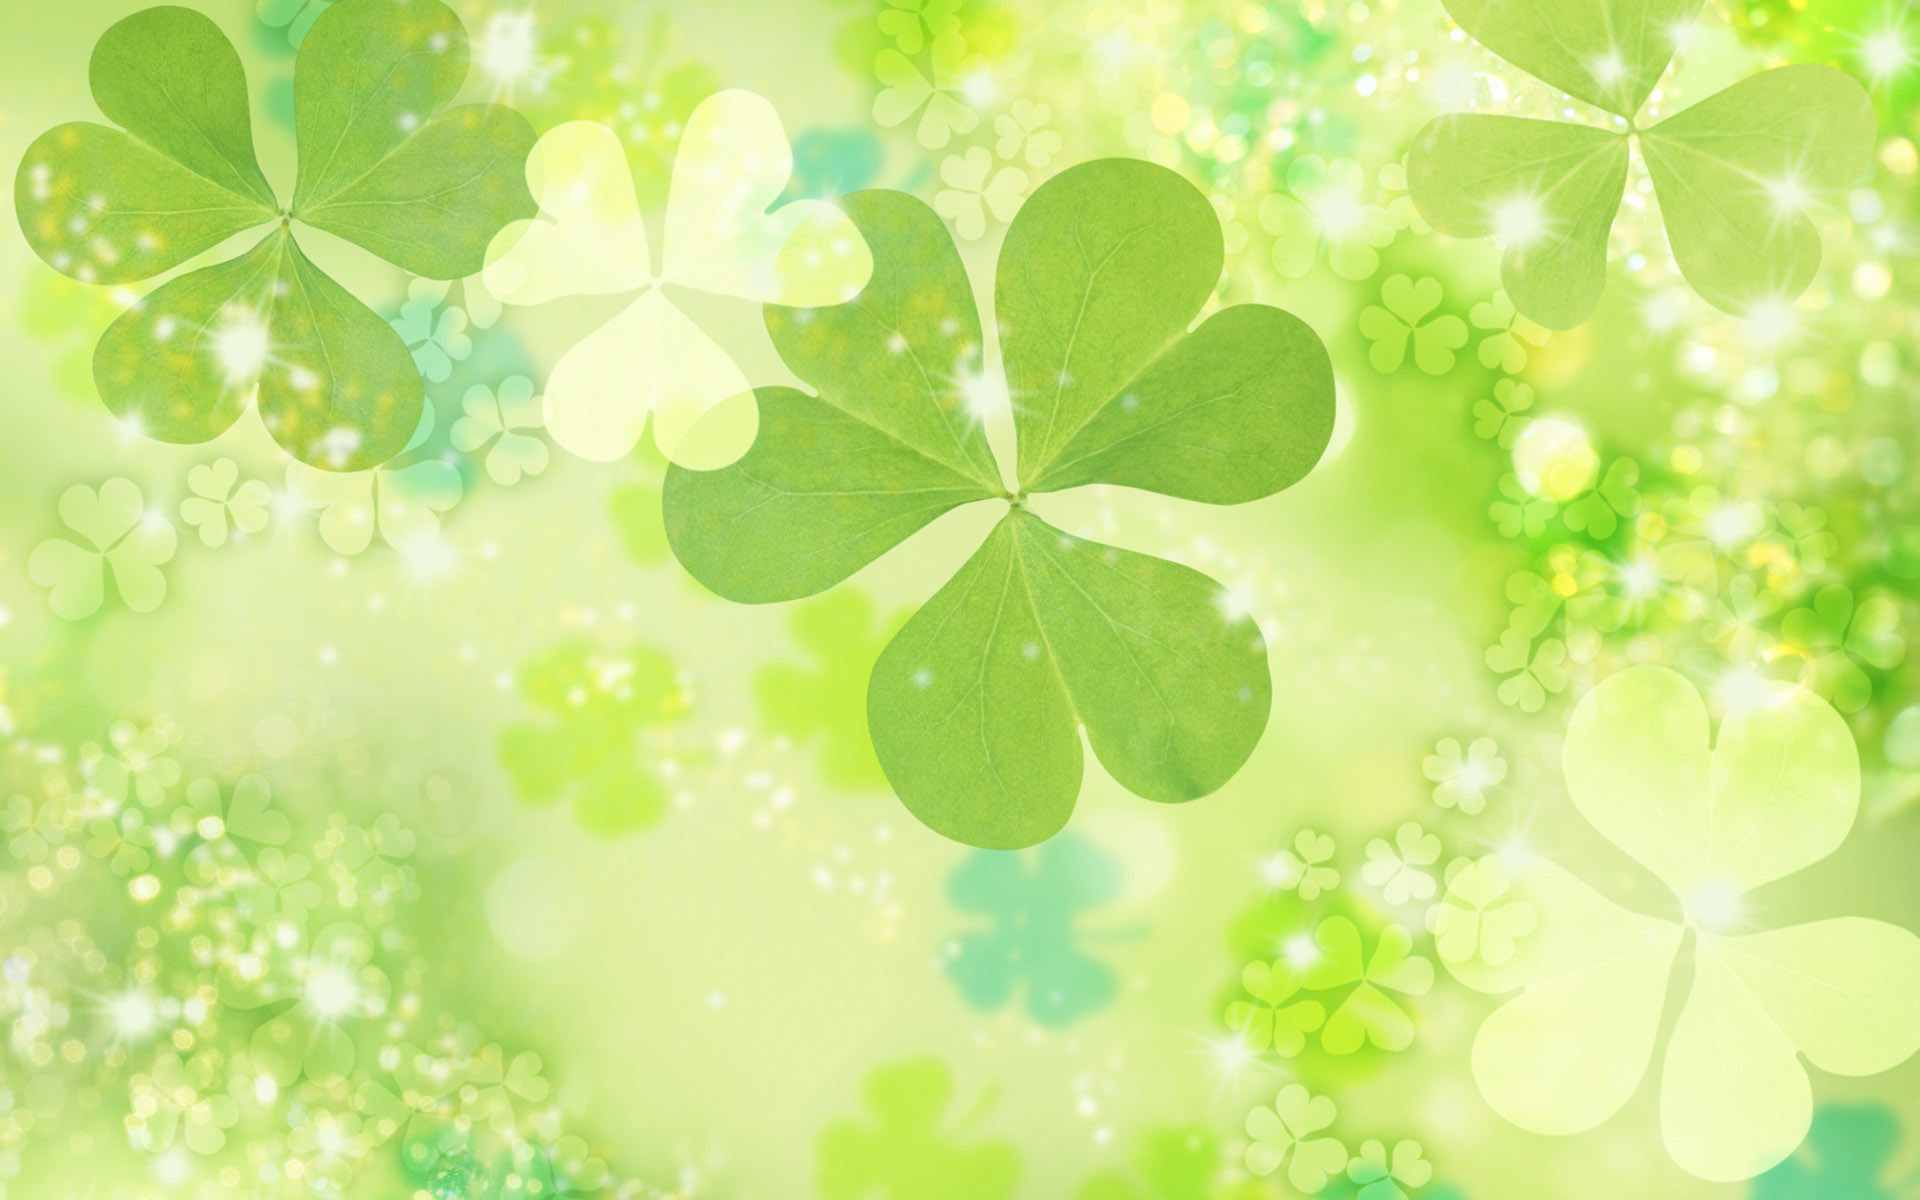 Free St. Patrick's Day Wallpapers - Page 2